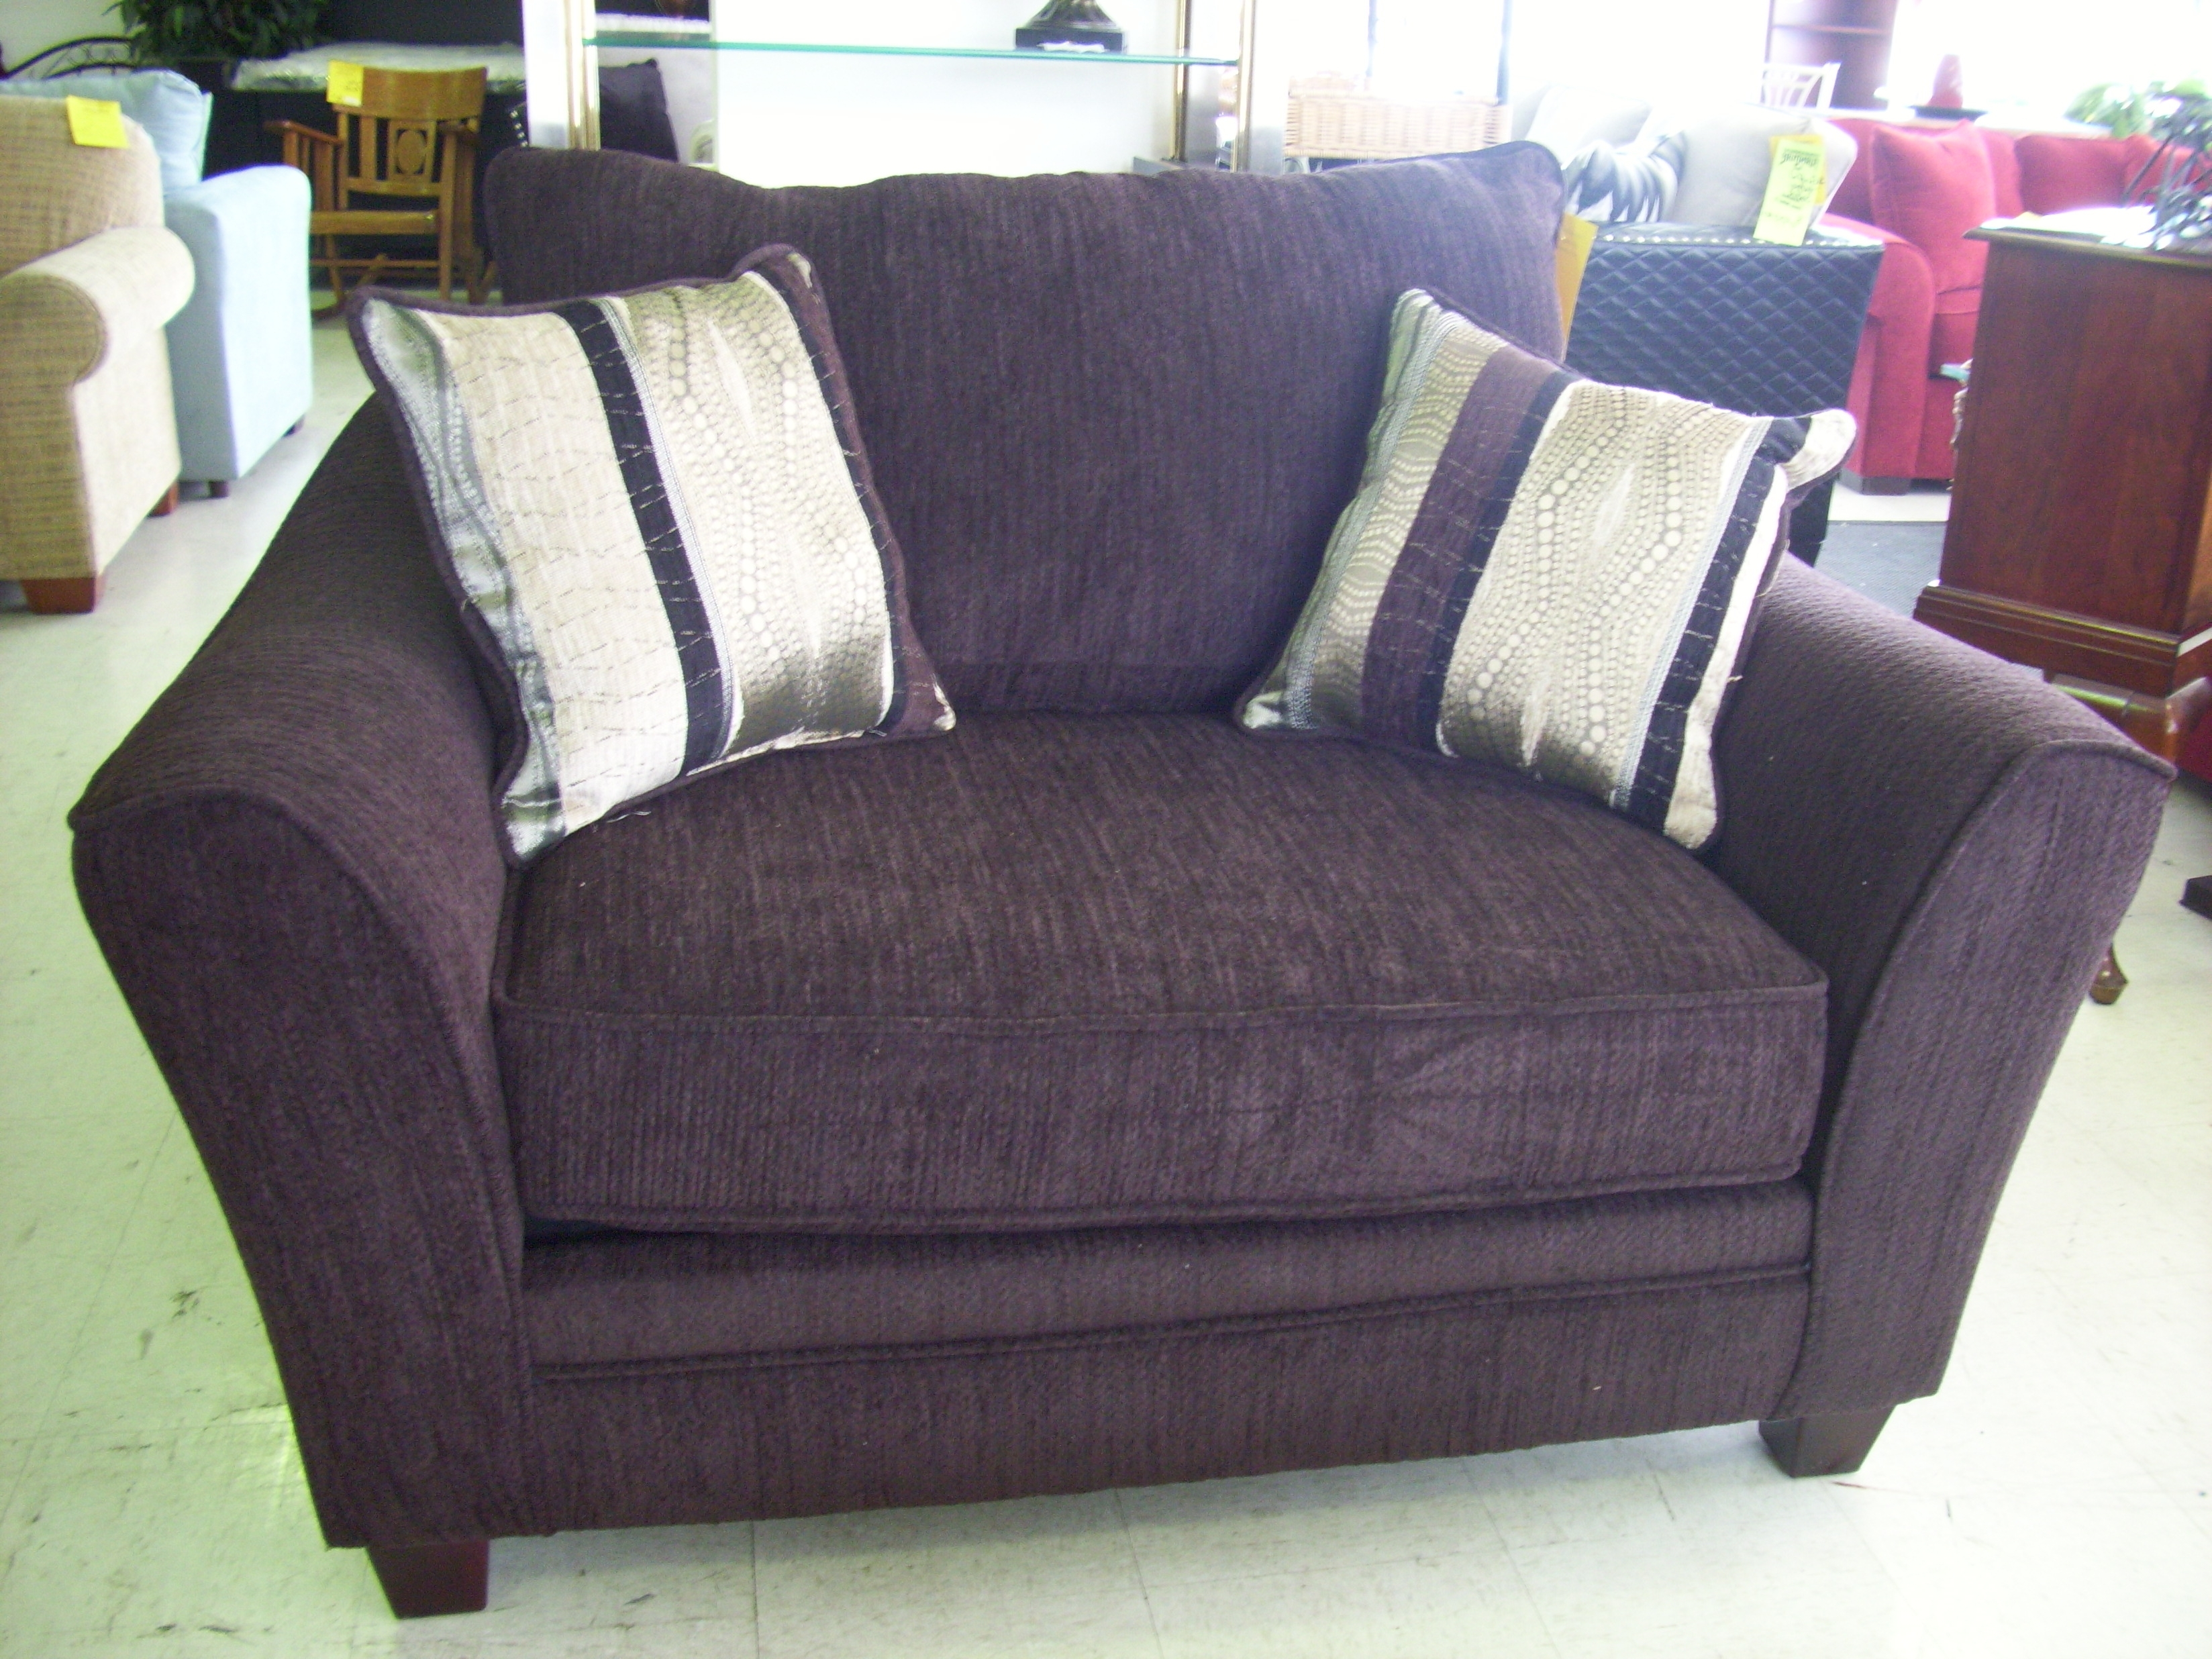 Favorite Picture 20 Of 37 – Oversized Sofa Chair Best Of Imposing Oversized Throughout Oversized Sofa Chairs (View 14 of 20)